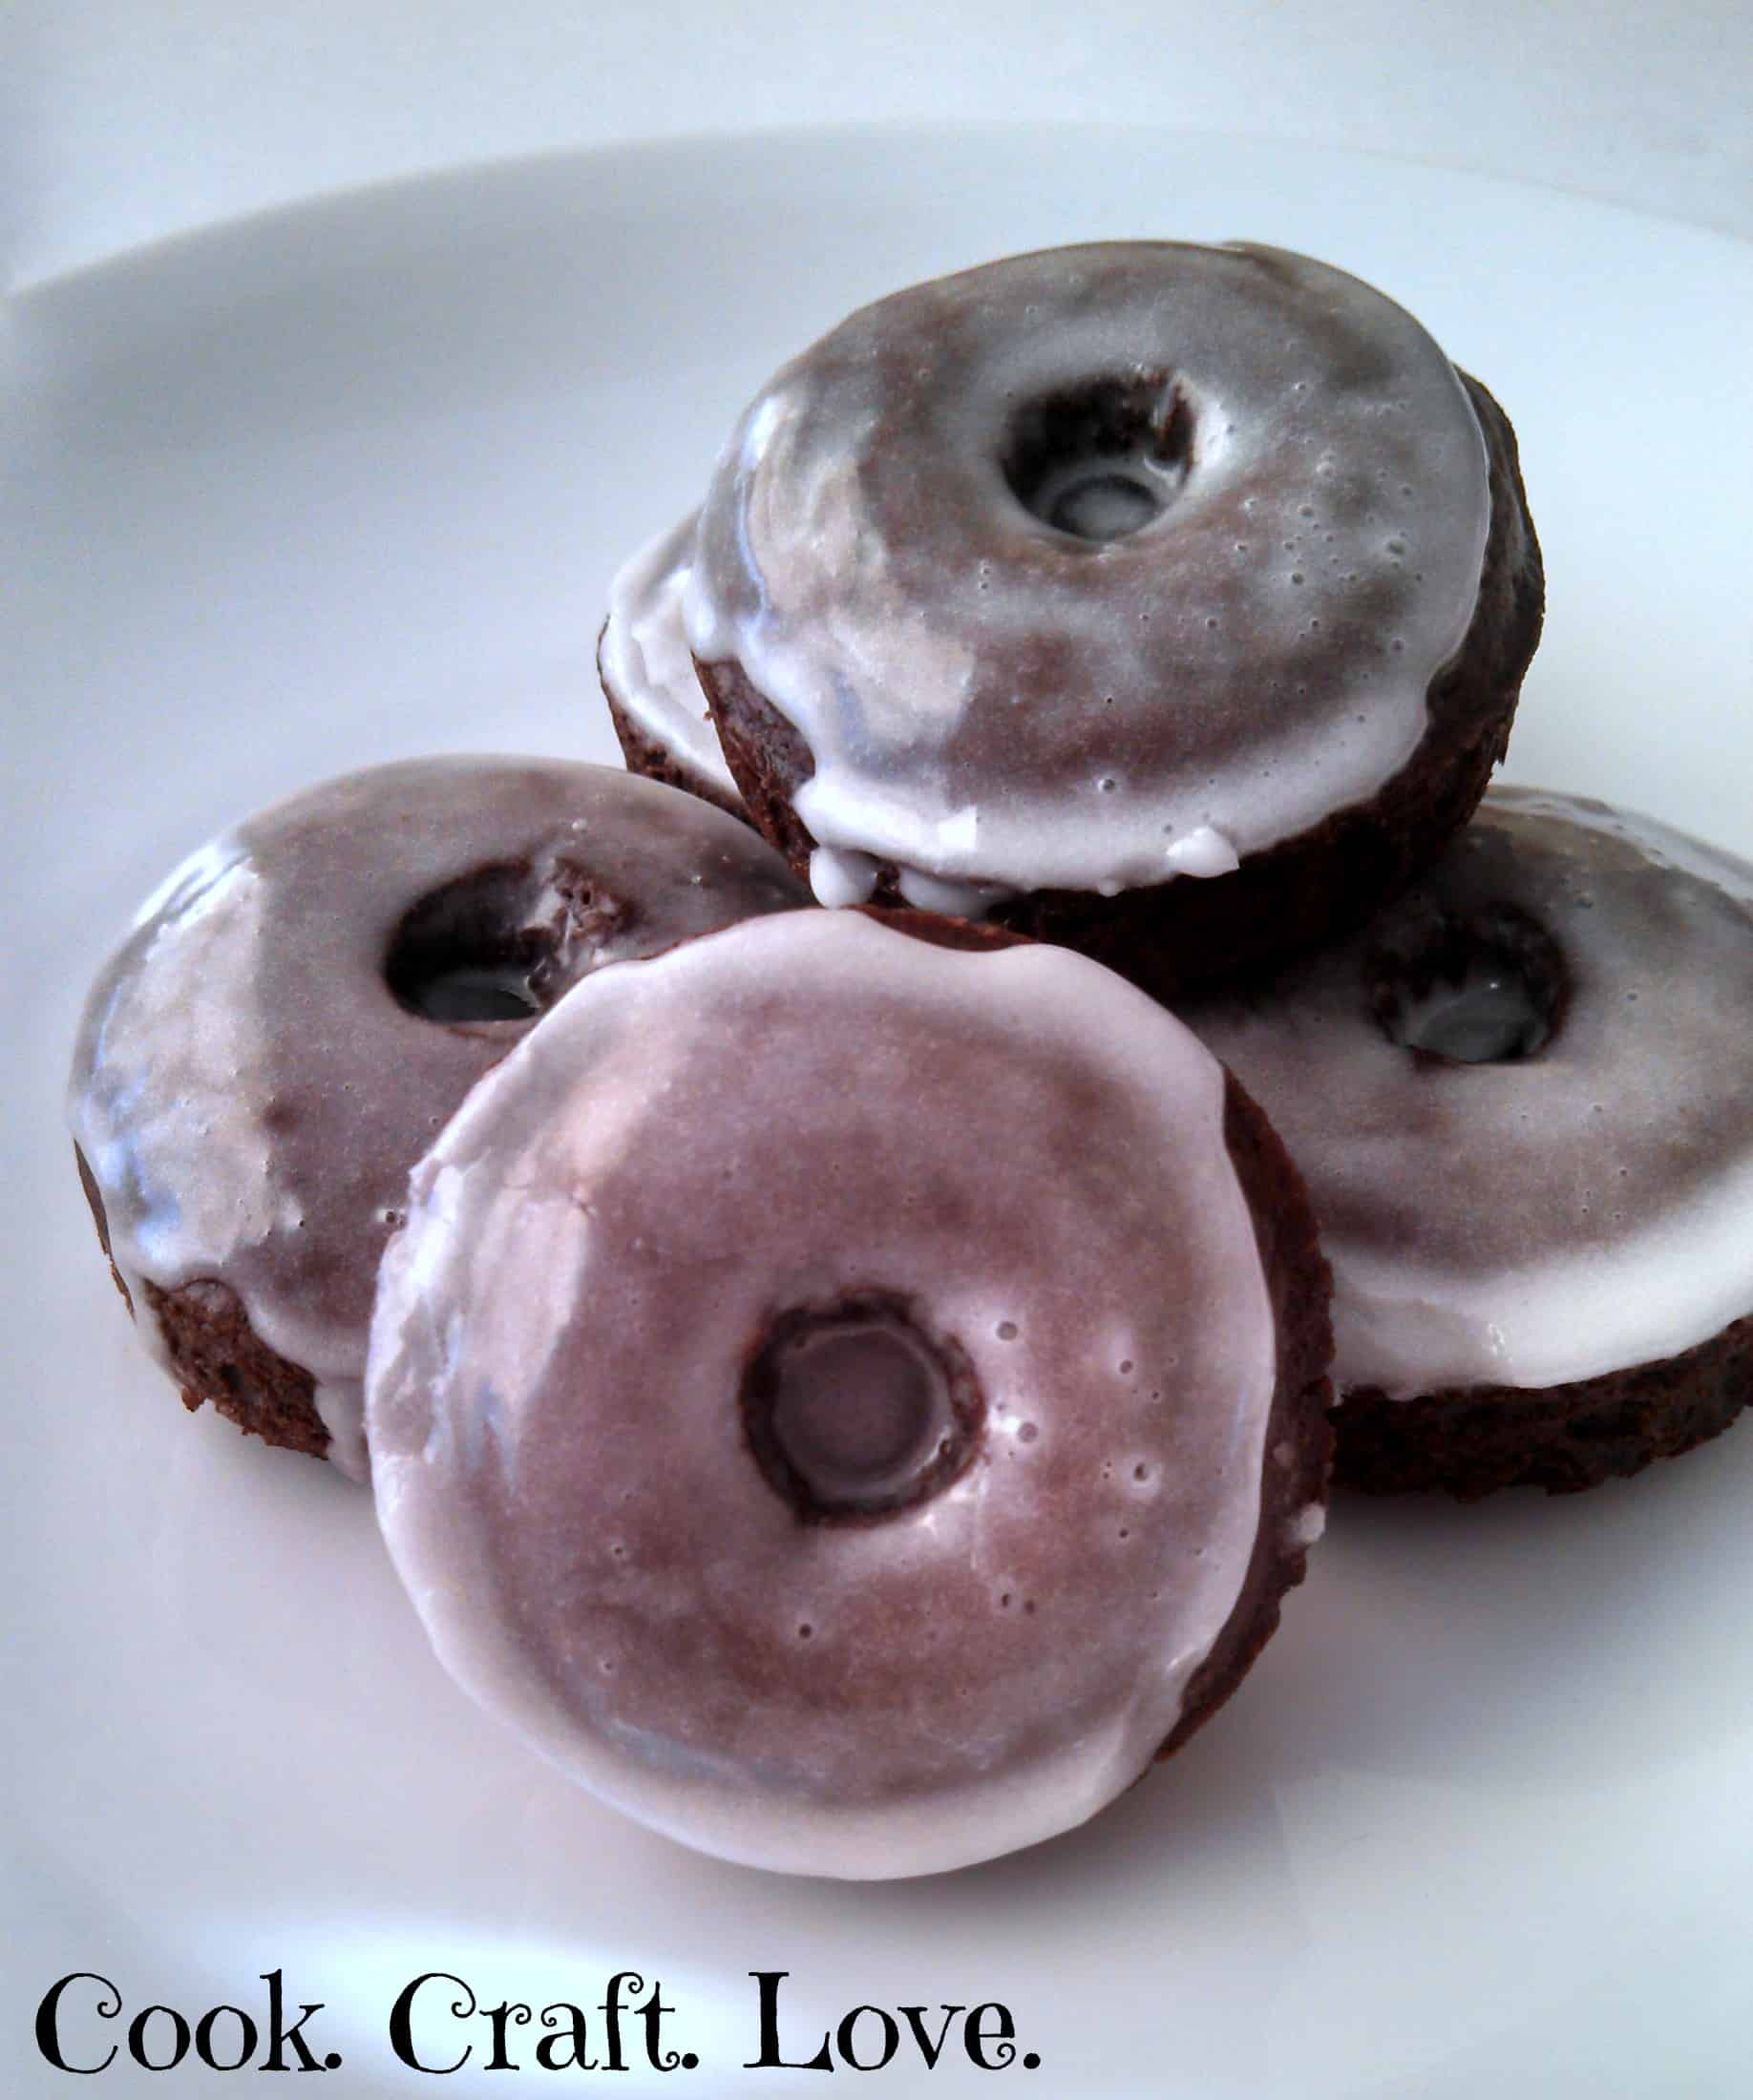 Chocolate Donuts | Cook. Craft. Love.